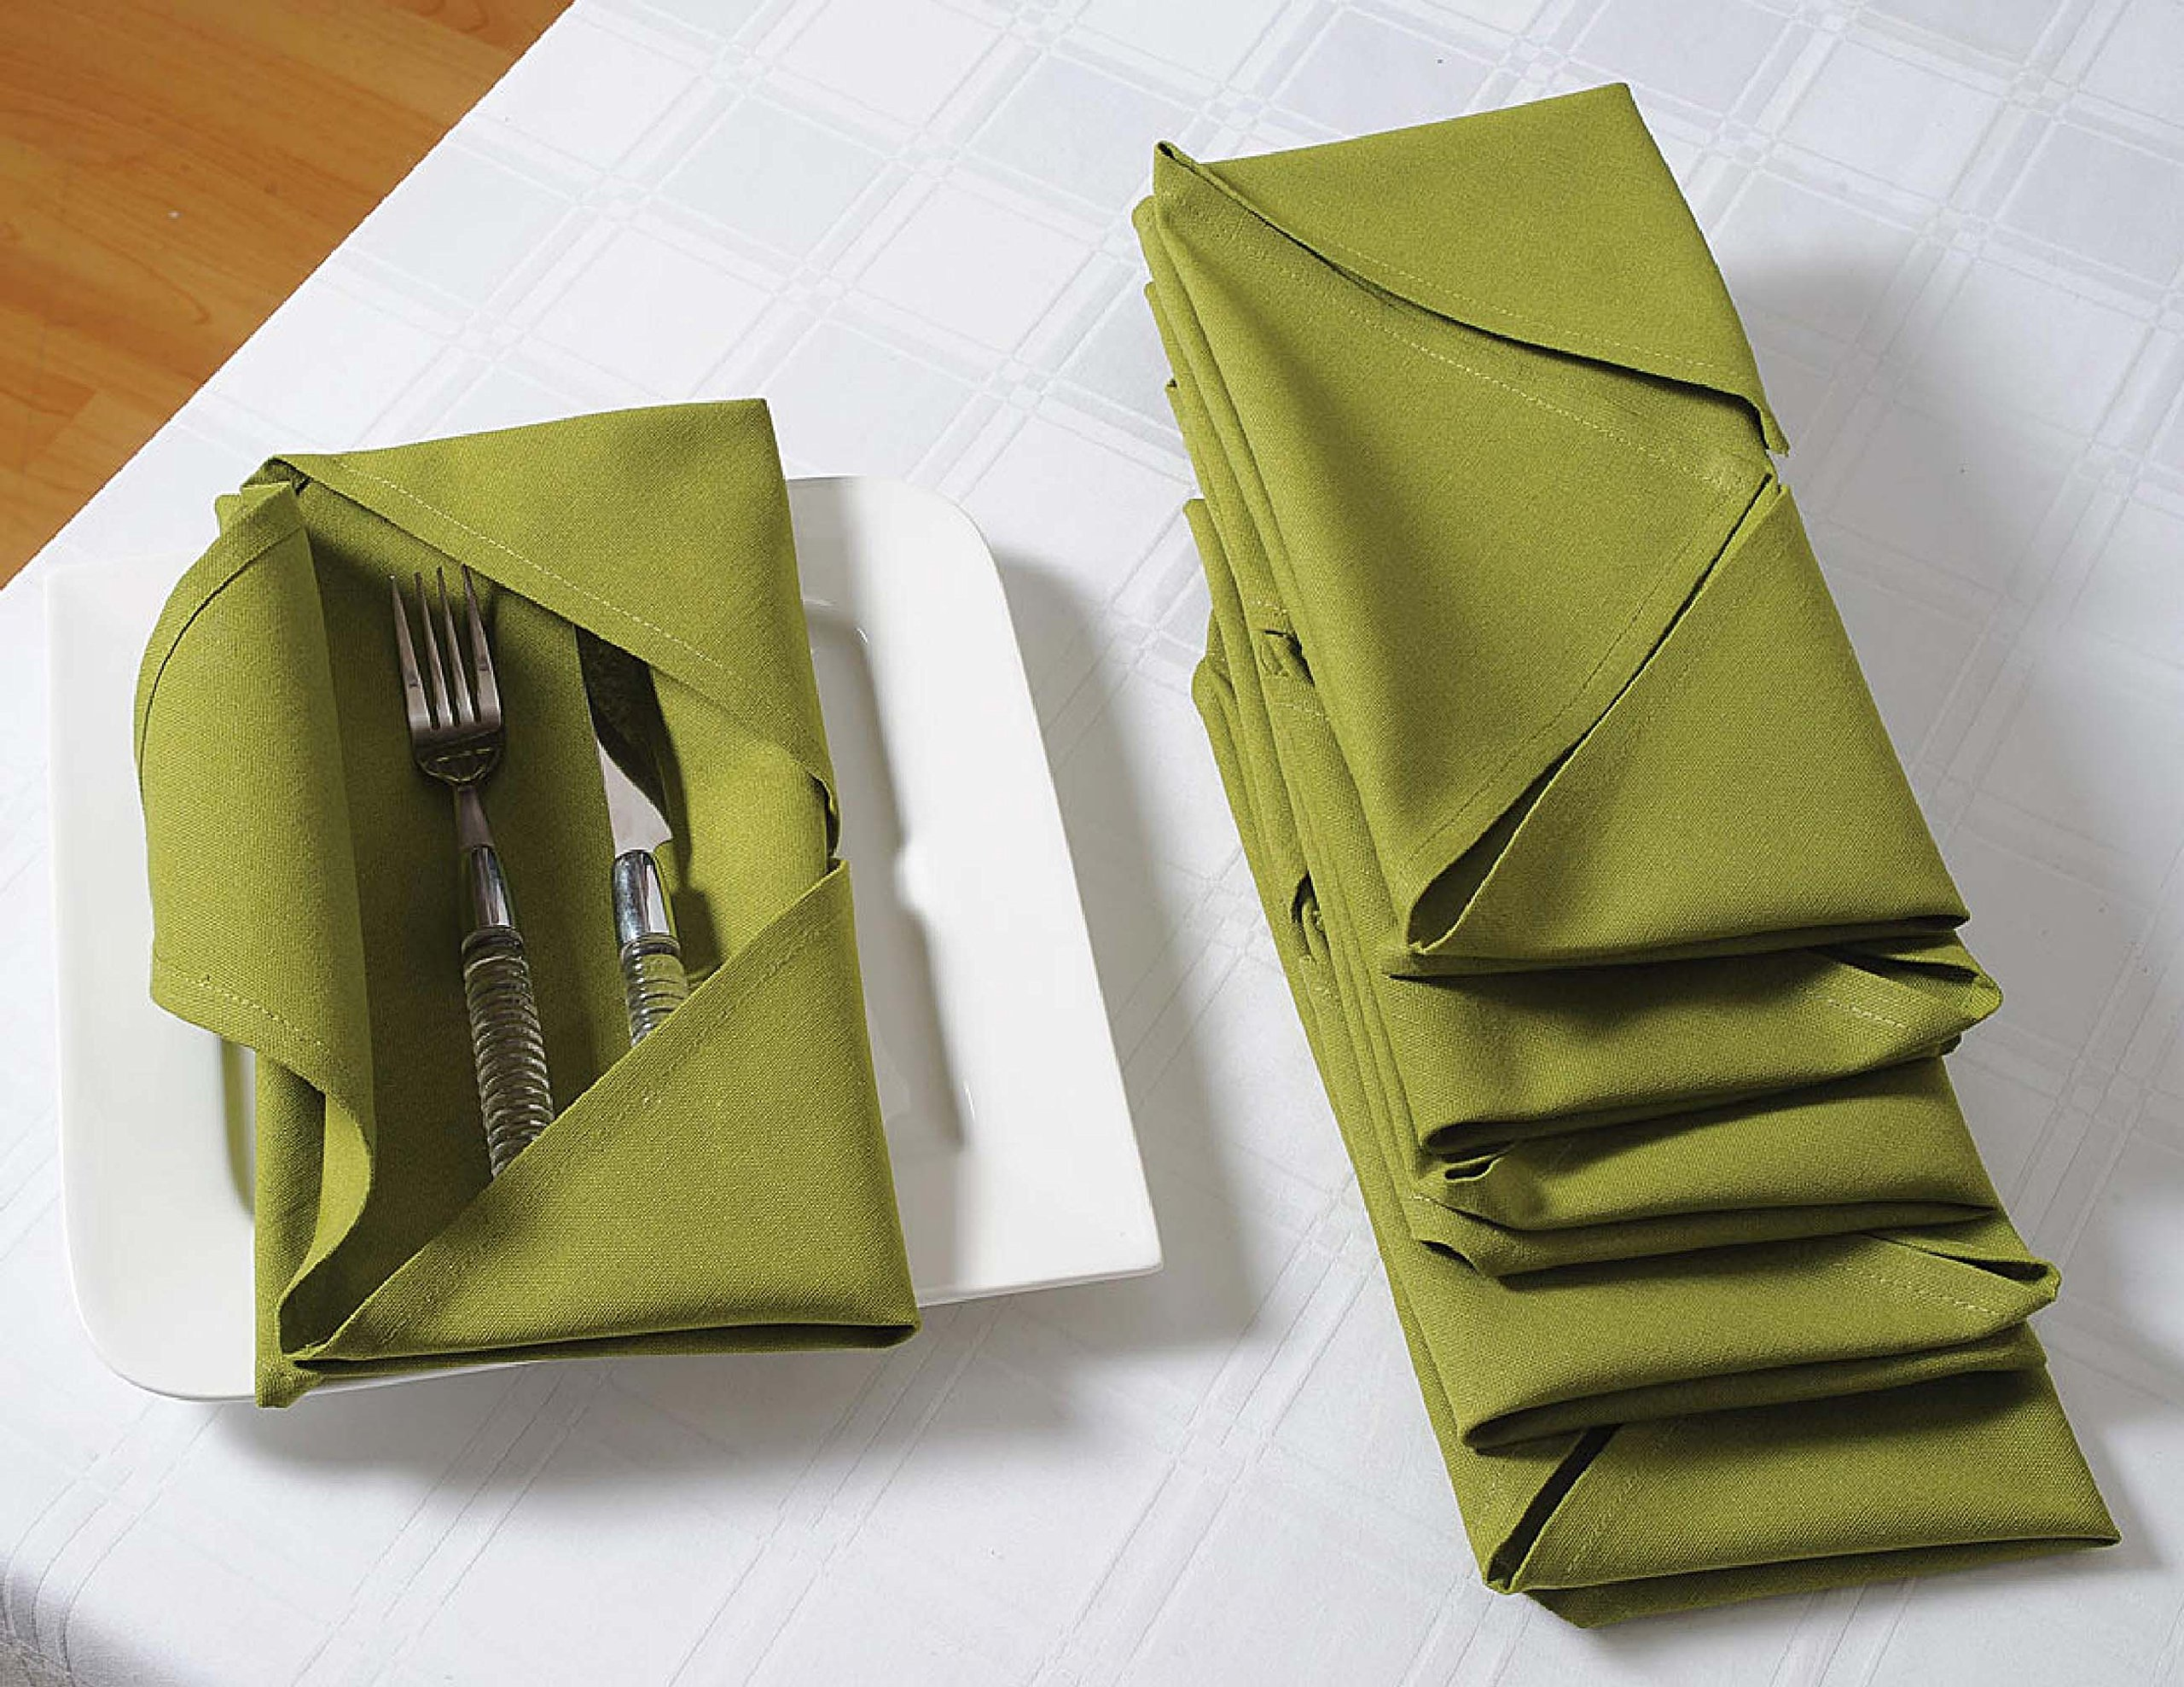 ShalinIndia Cloth Dinner Napkins - 24'' x 24'' - Cotton - Green - Set of 40 - Perfect for Weddings & Dinner Parties by ShalinIndia